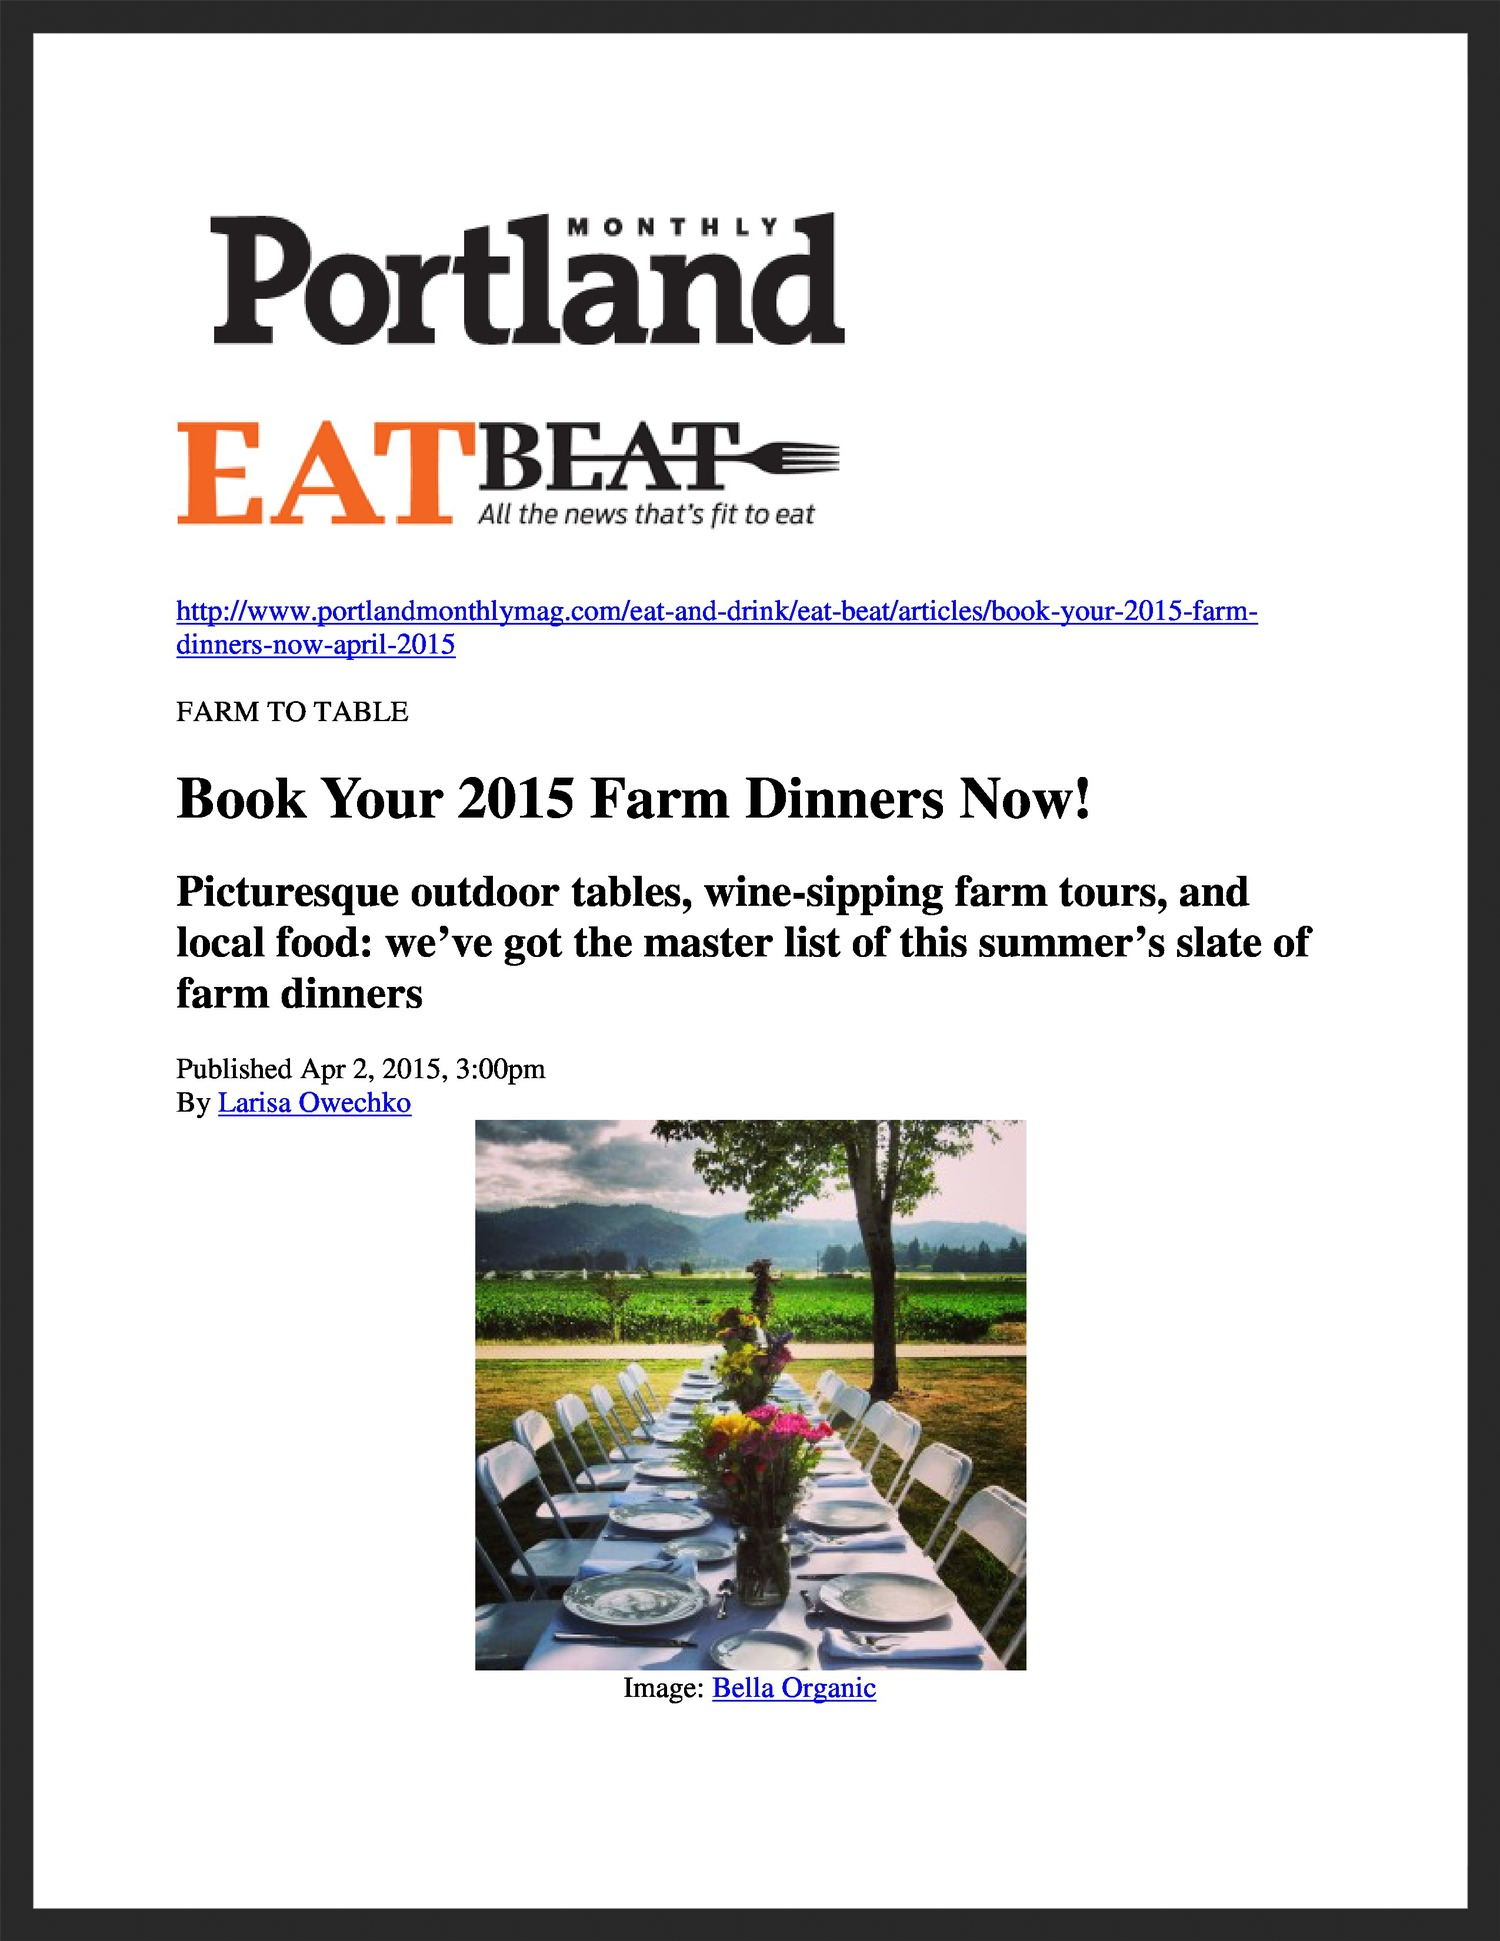 FIELD & VINE  Portland Monthly  04.02.2015